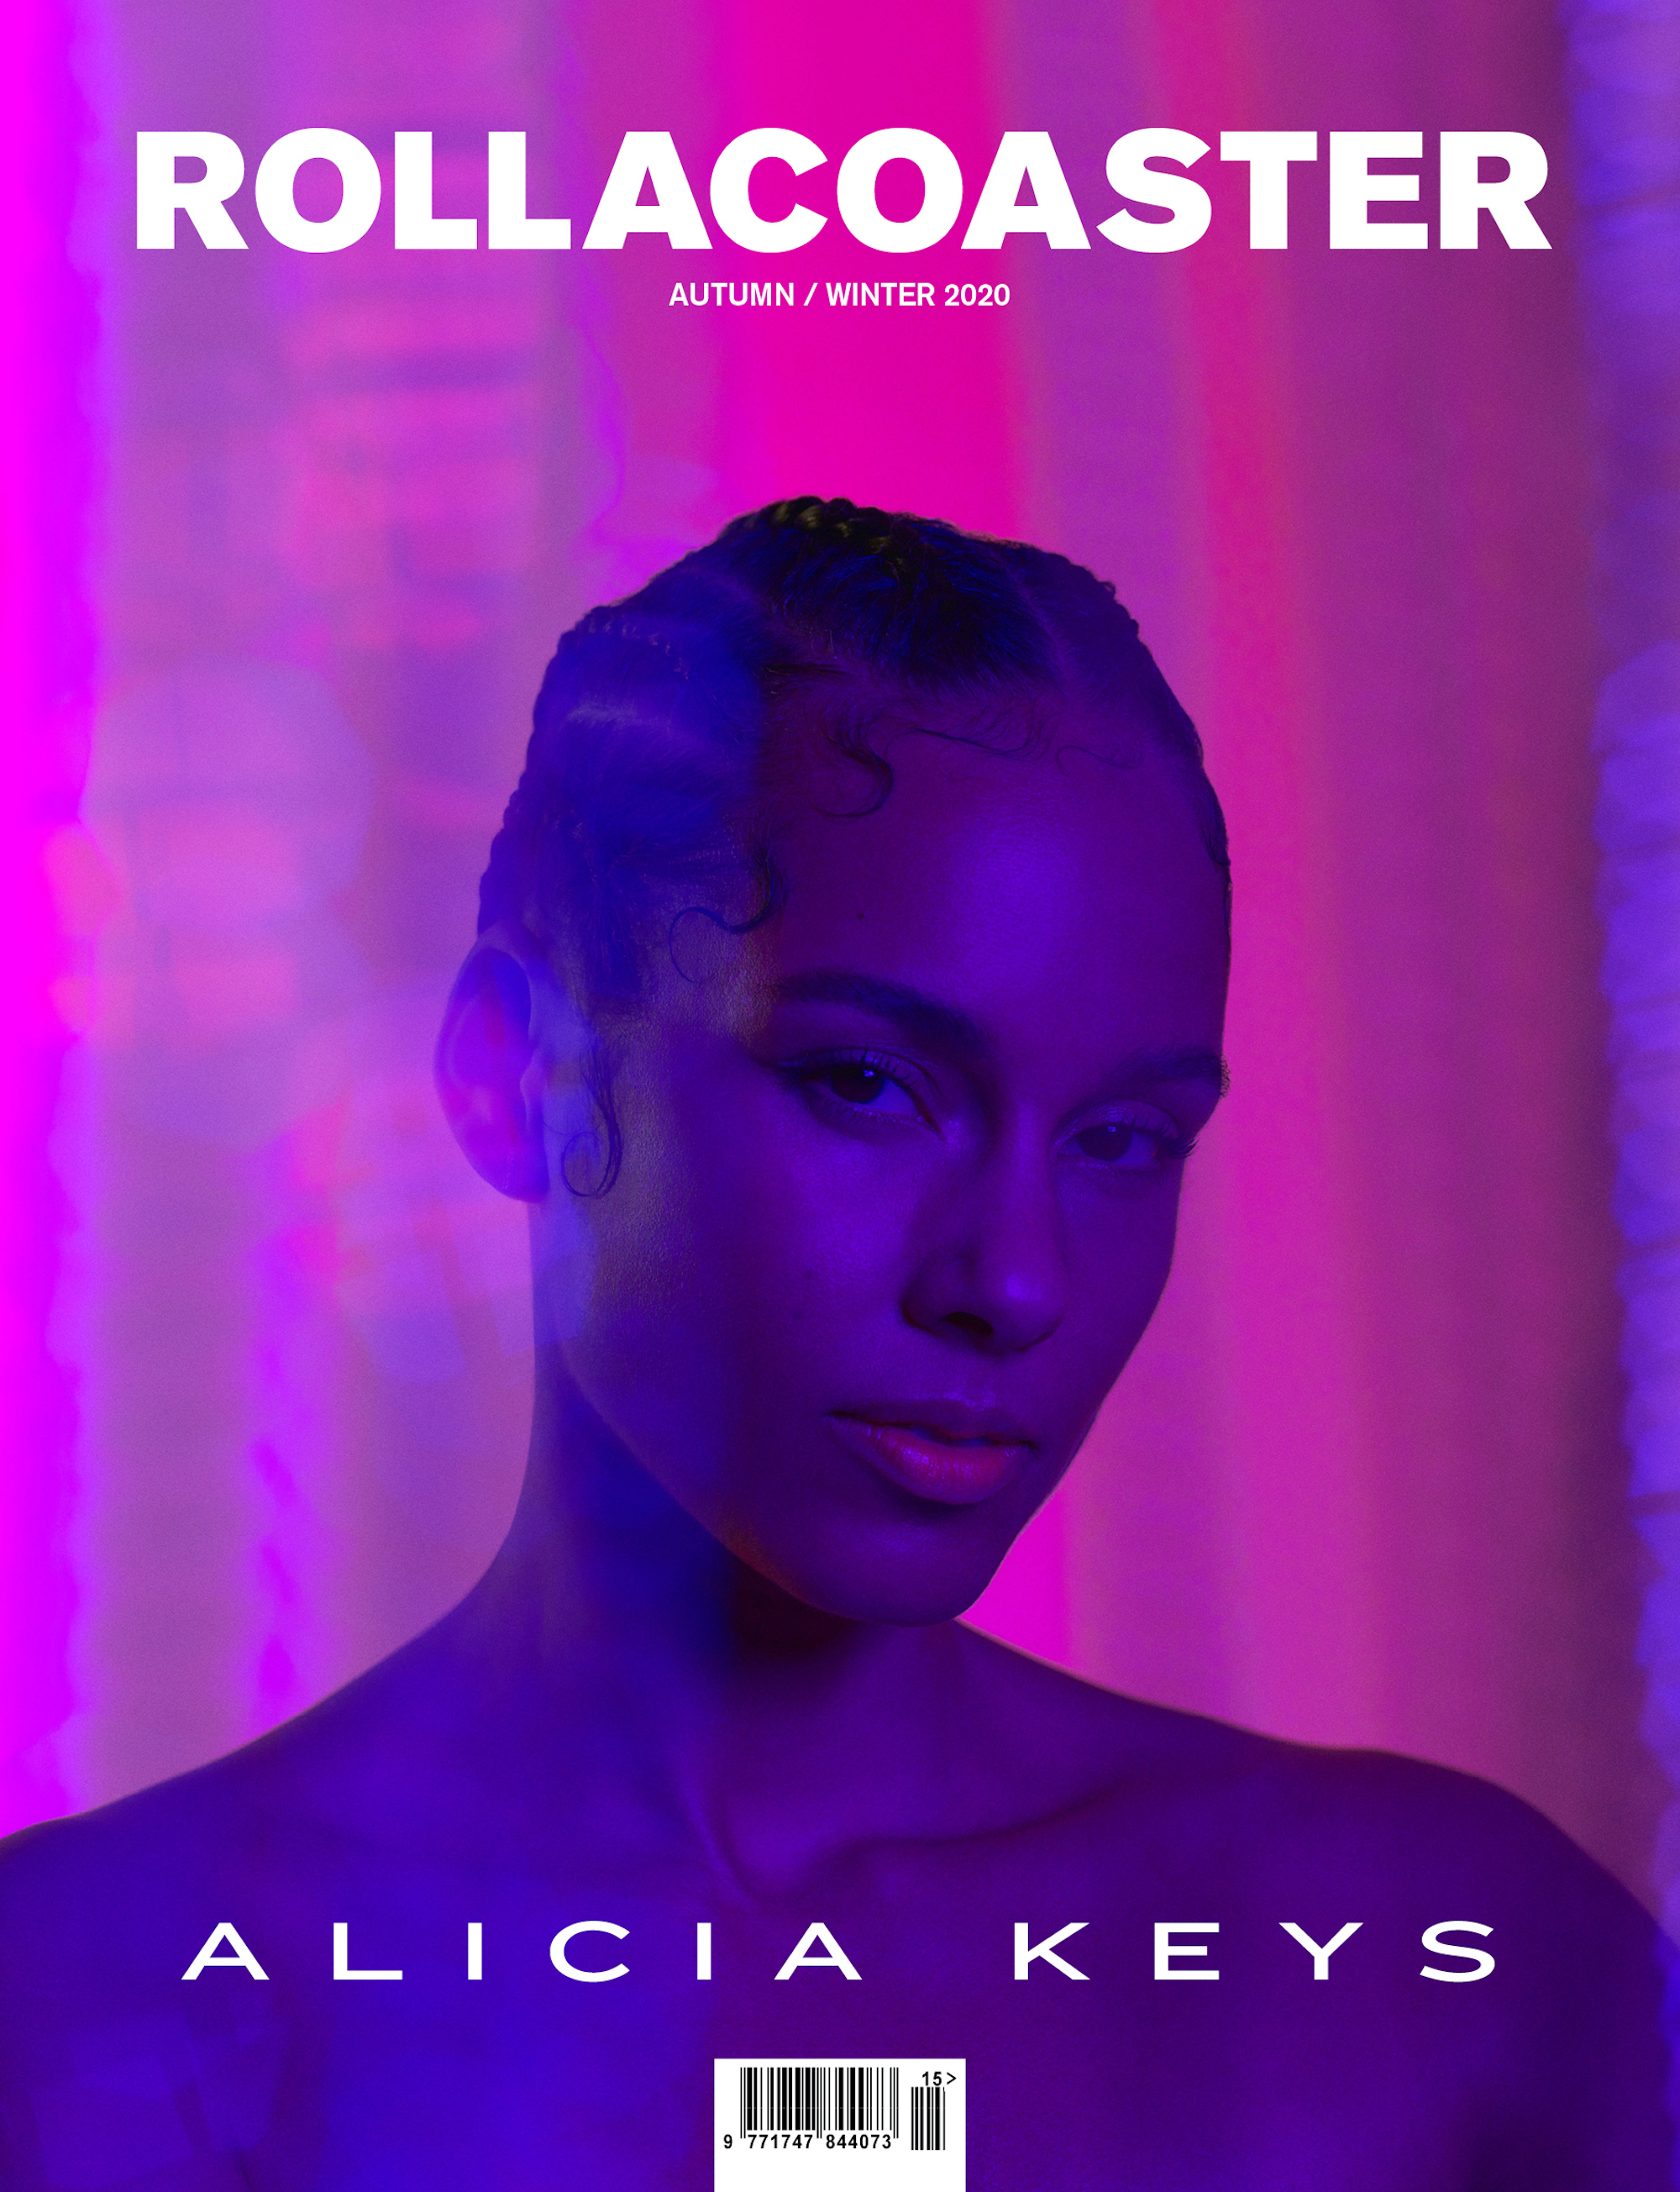 Alicia Keys is the digital cover star for Rollacoaster